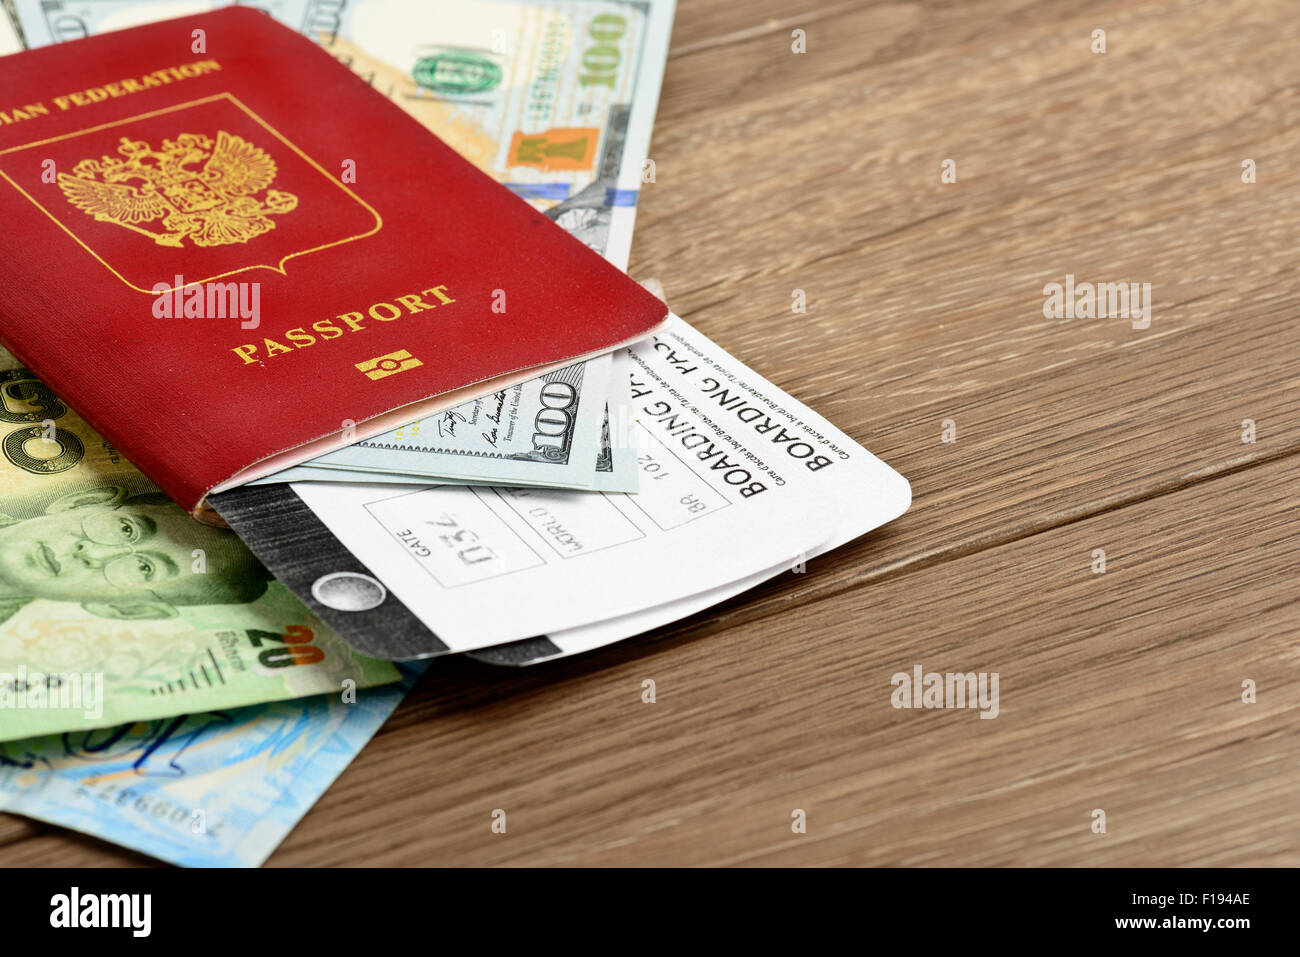 Airline tickets and documents on wooden table - Stock Image